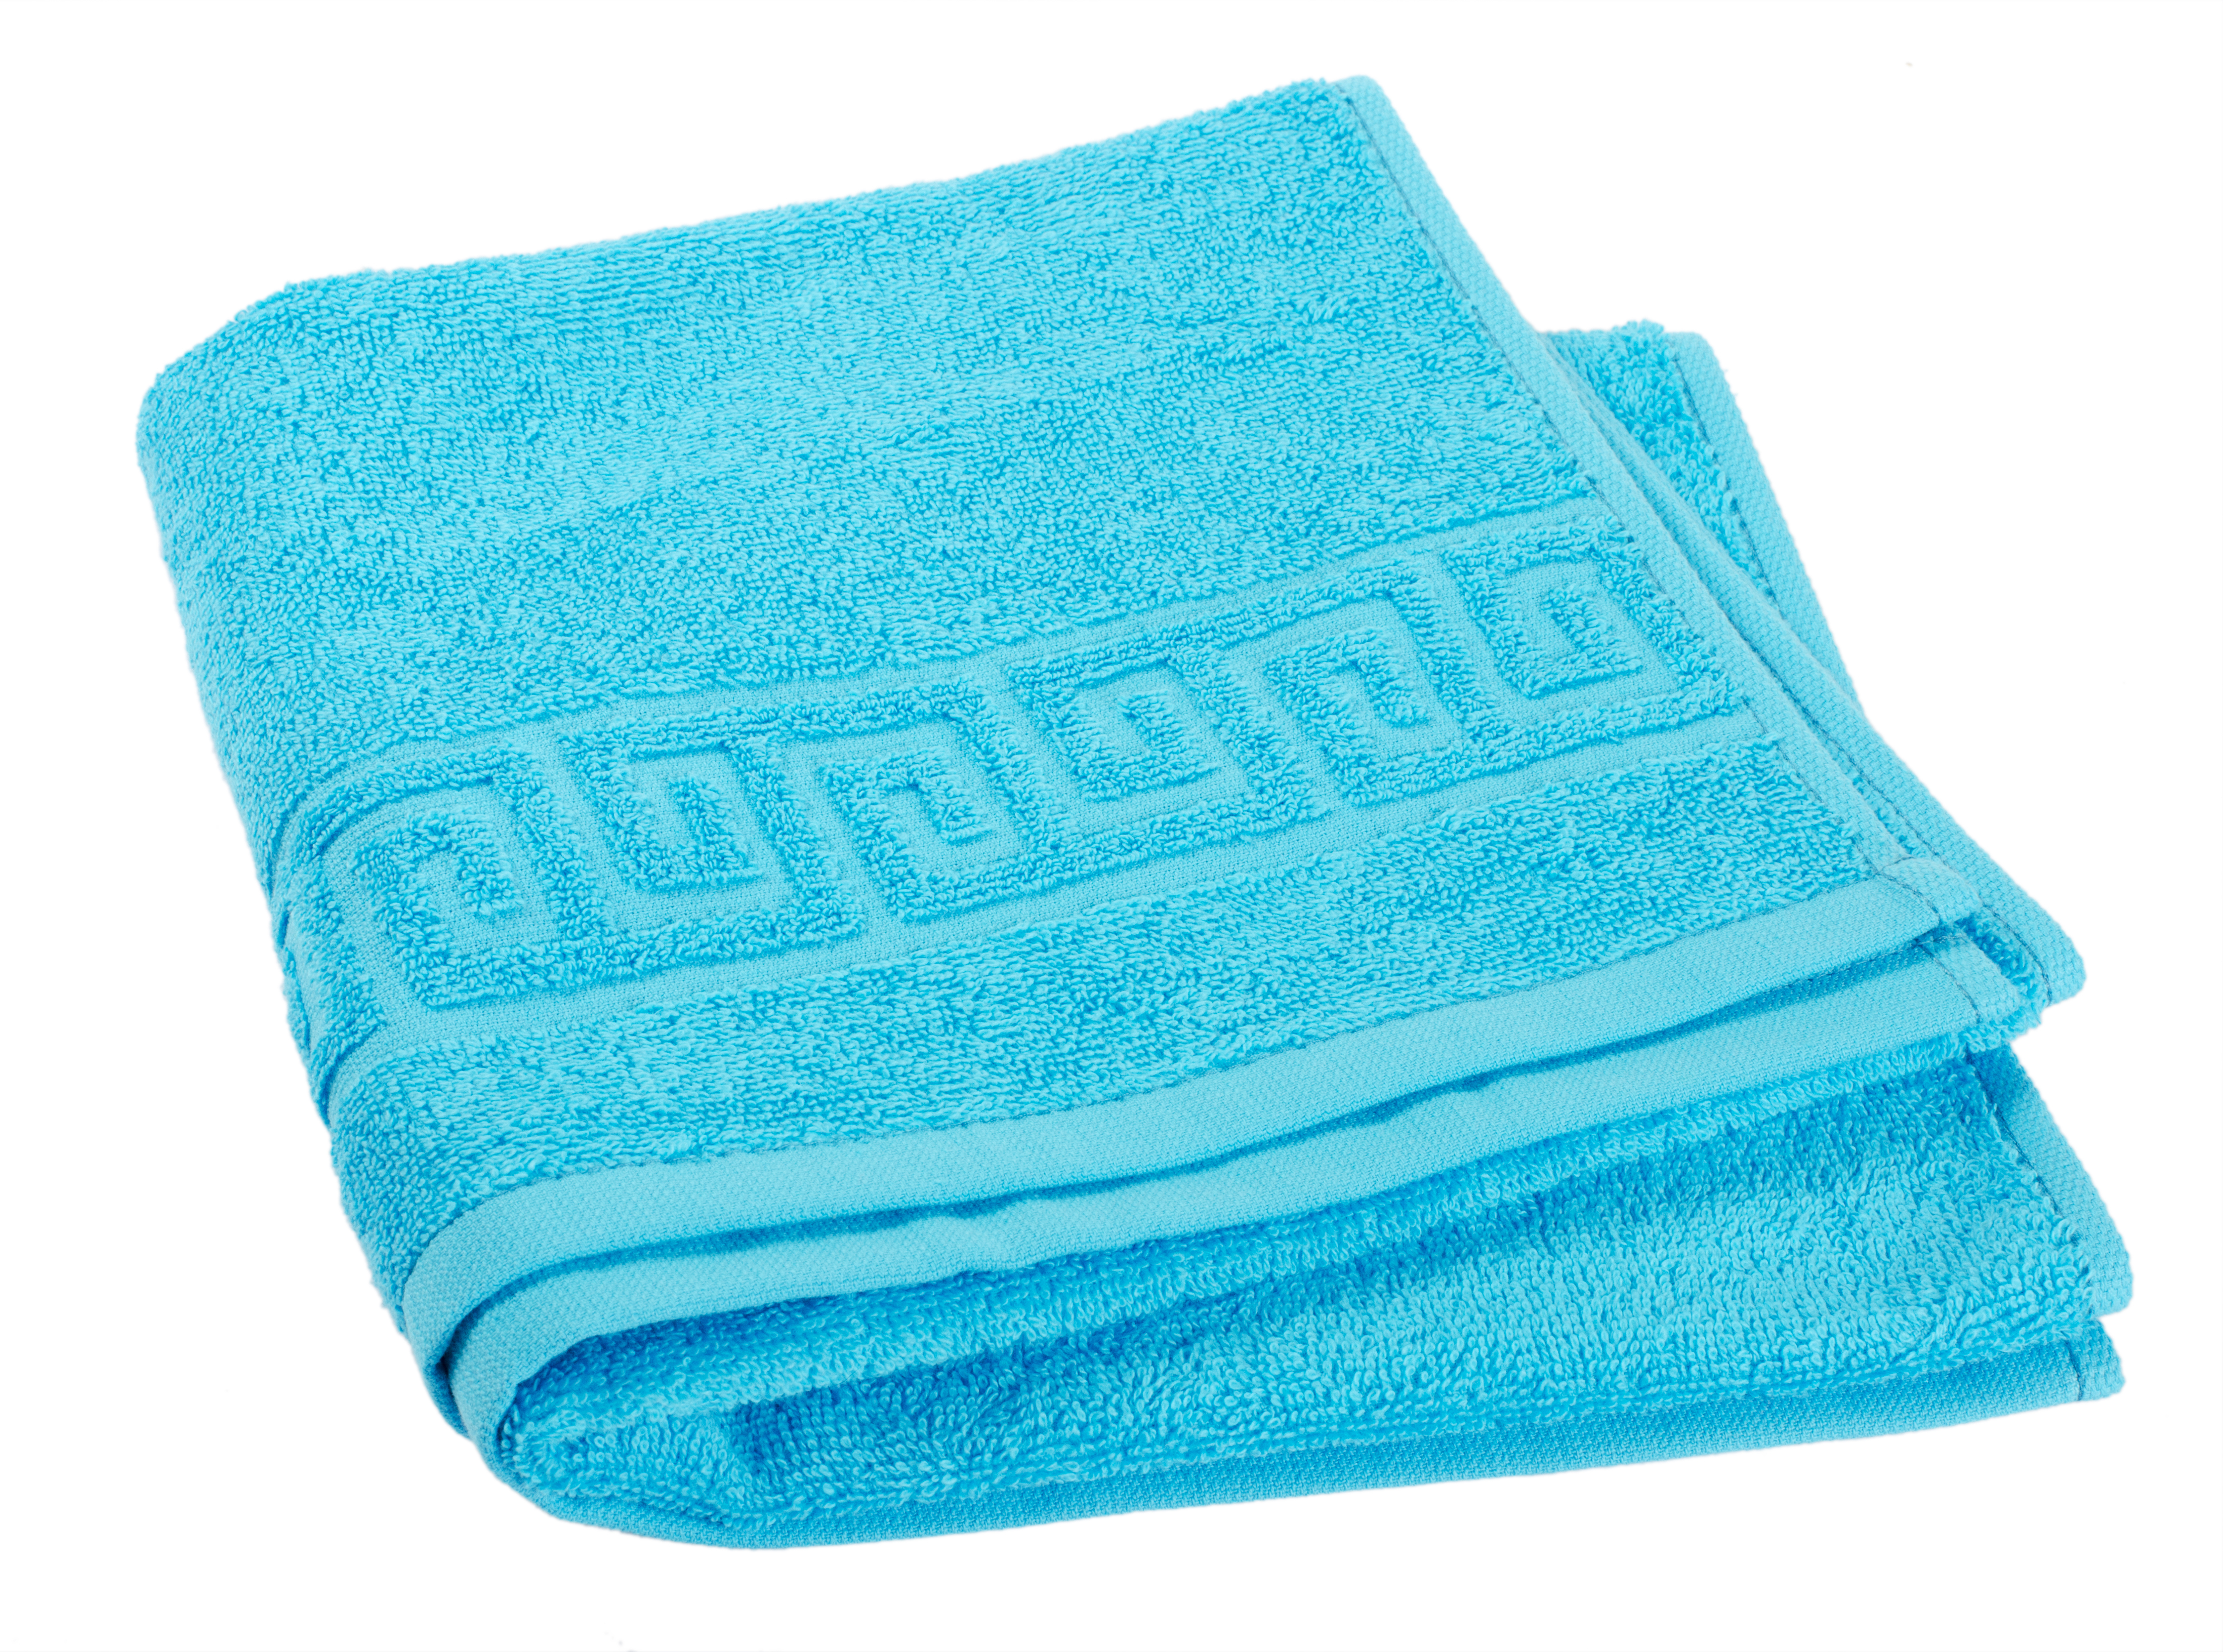 Relief woven jacquard towel.